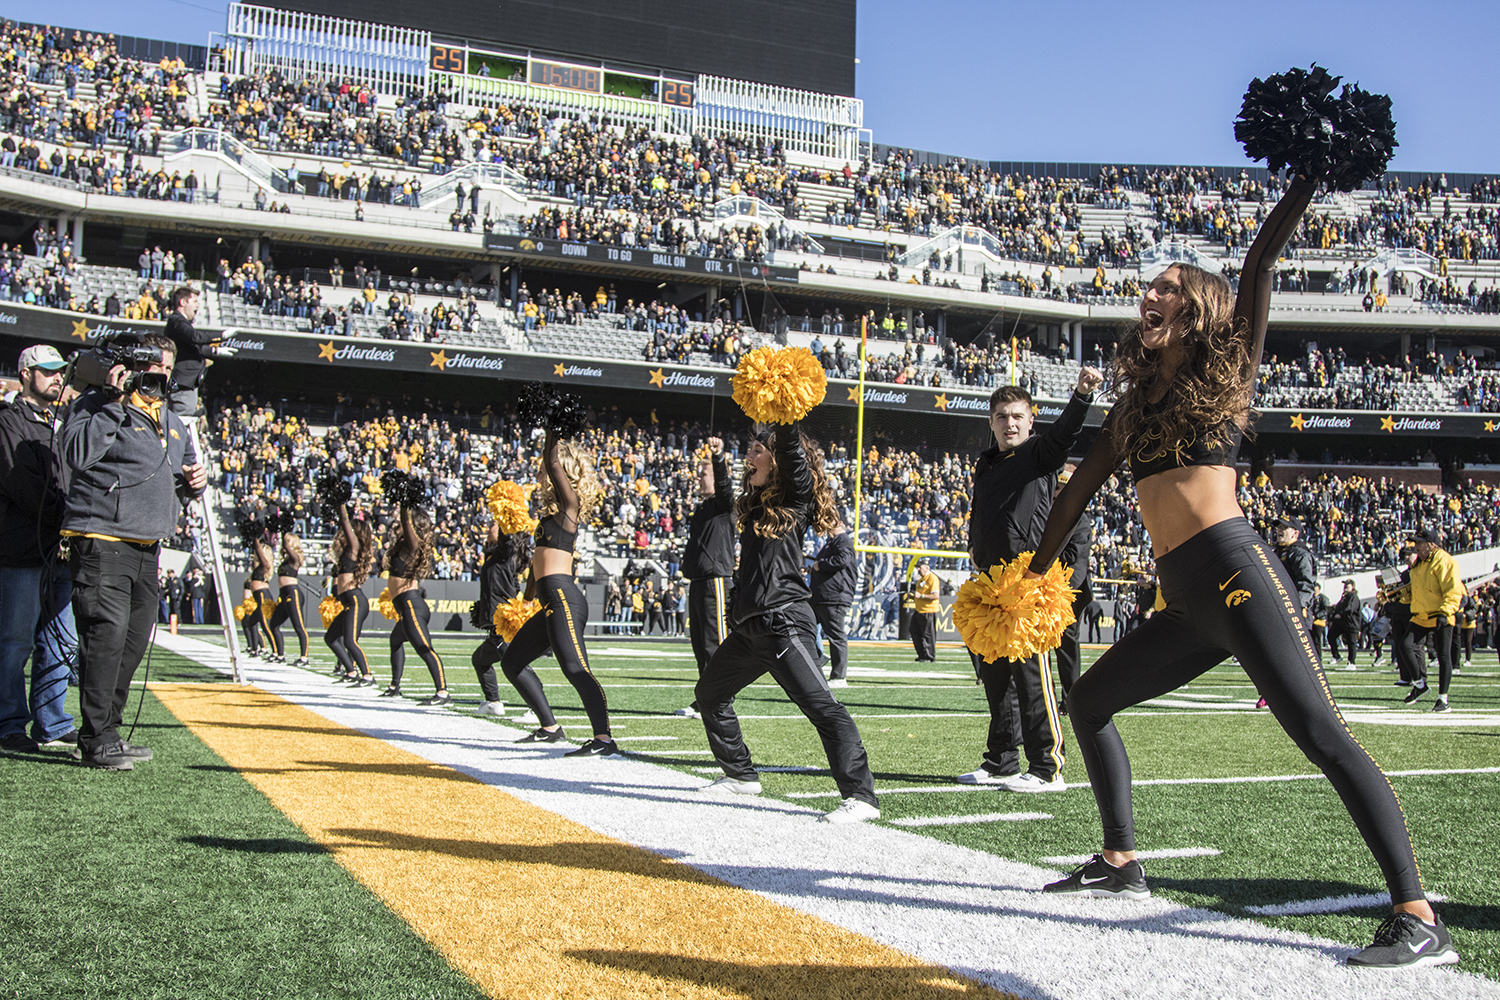 Iowa+cheer+teams+perform+during+a+football+game+between+Iowa+and+Maryland+in+Kinnick+Stadium+on+Saturday%2C+October+20%2C+2018.+The+Hawkeyes+defeated+the+Terrapins%2C+23-0.+